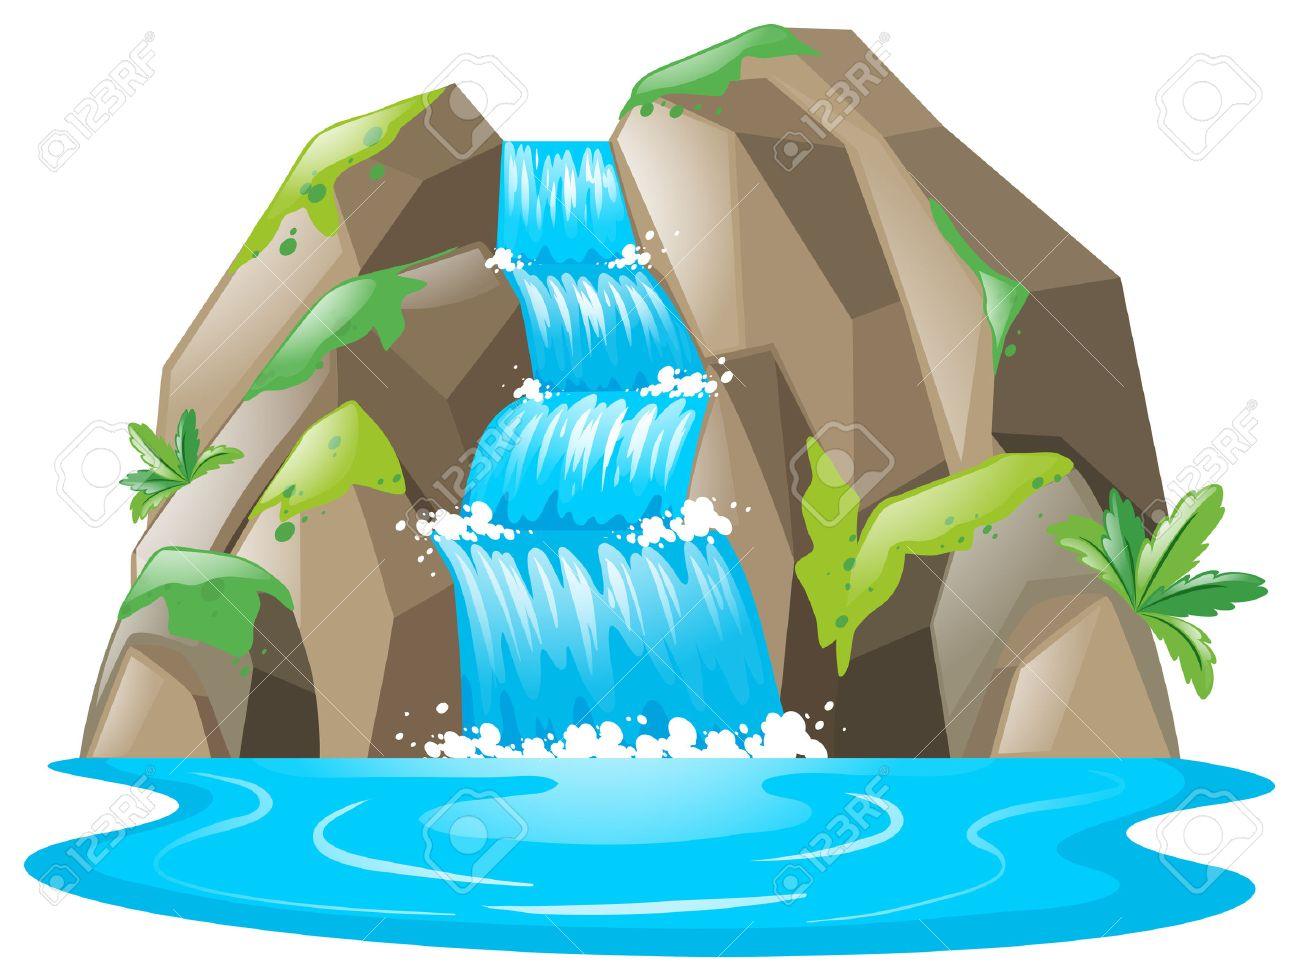 scene with waterfall and river illustration royalty free cliparts rh 123rf com river clipart free river clipart images